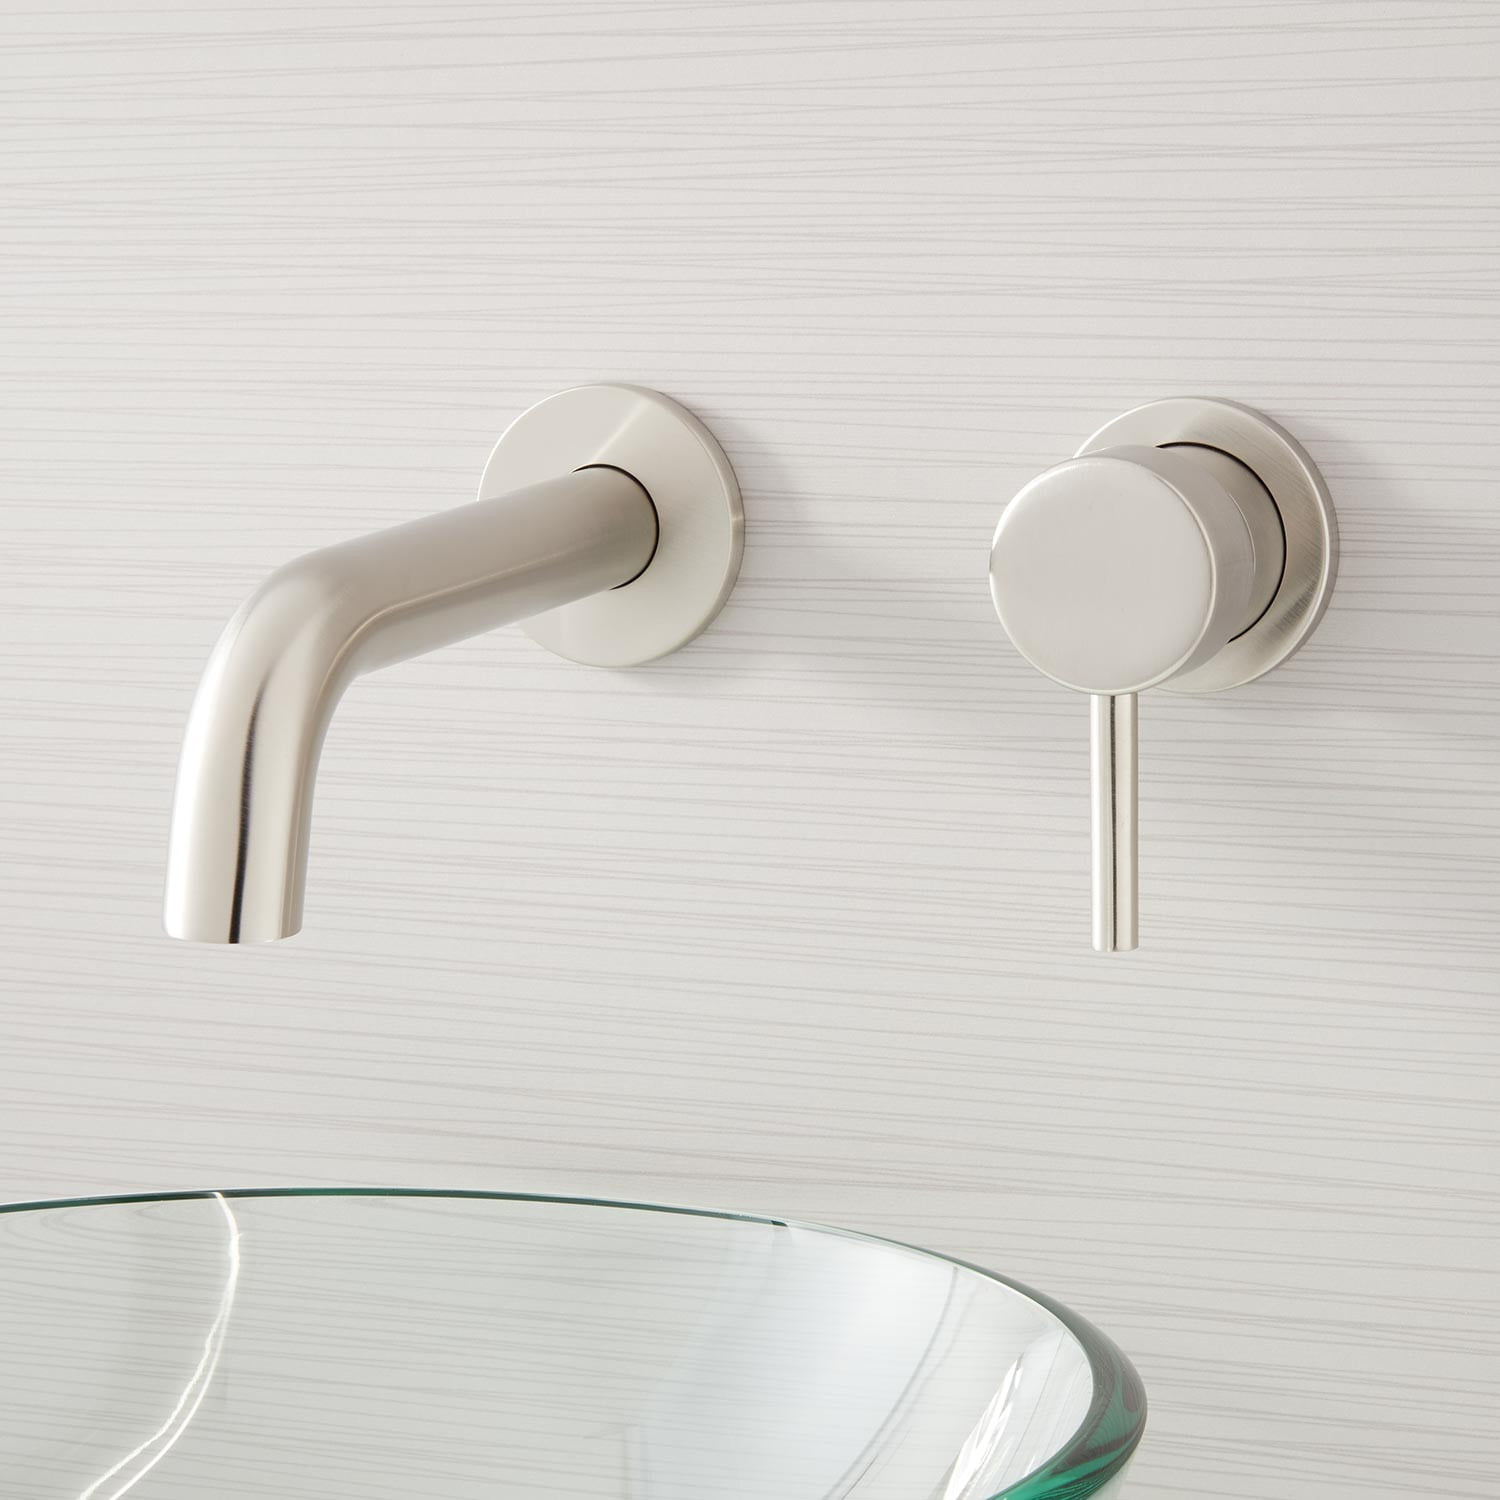 Rotunda Wall Mount Bathroom Faucet Bathroom in measurements 1500 X 1500